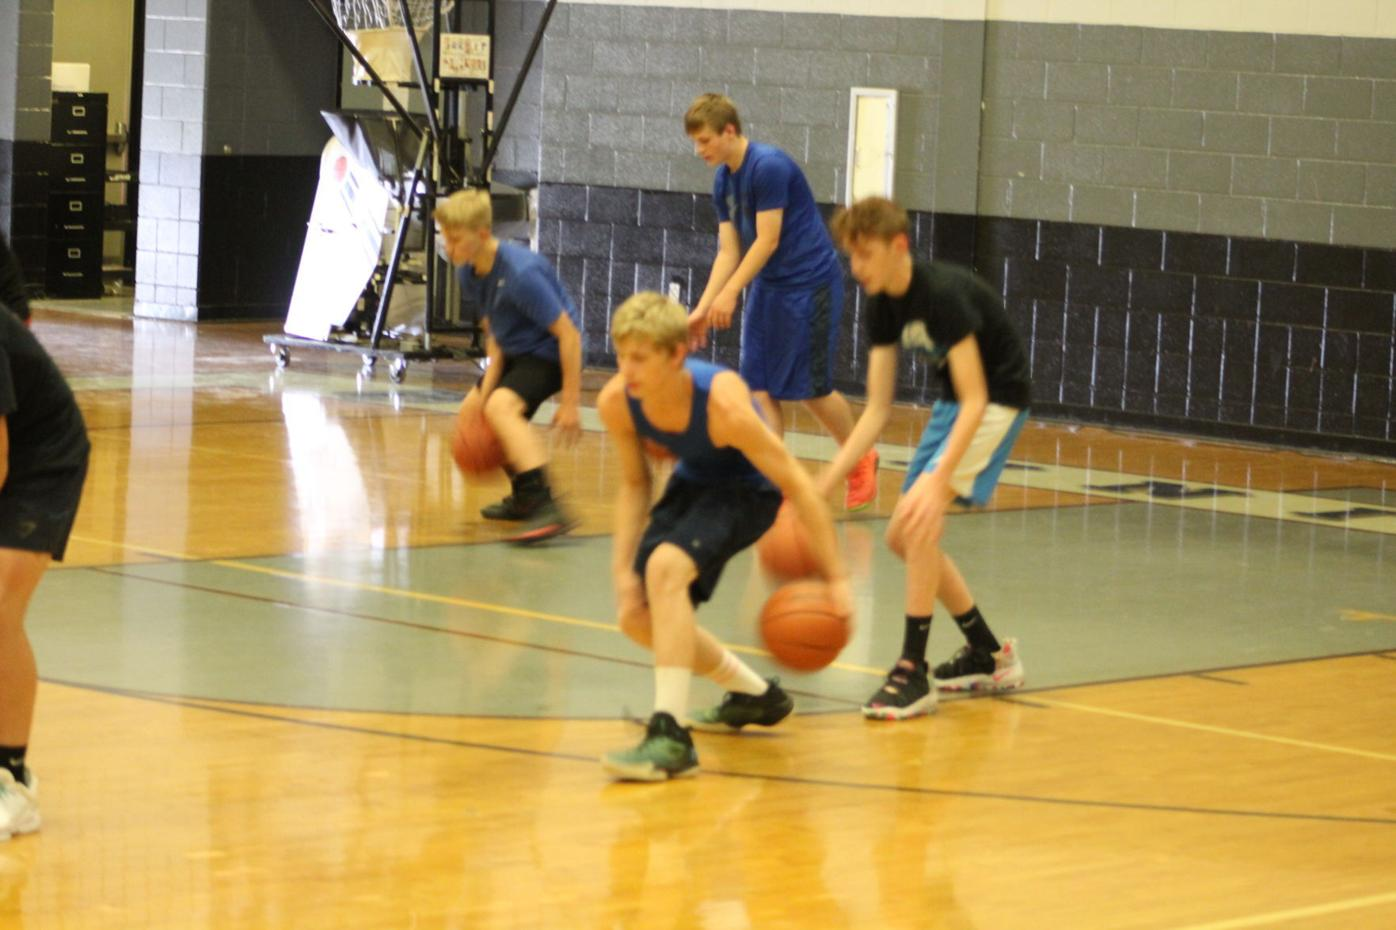 PHS basketball practice drill